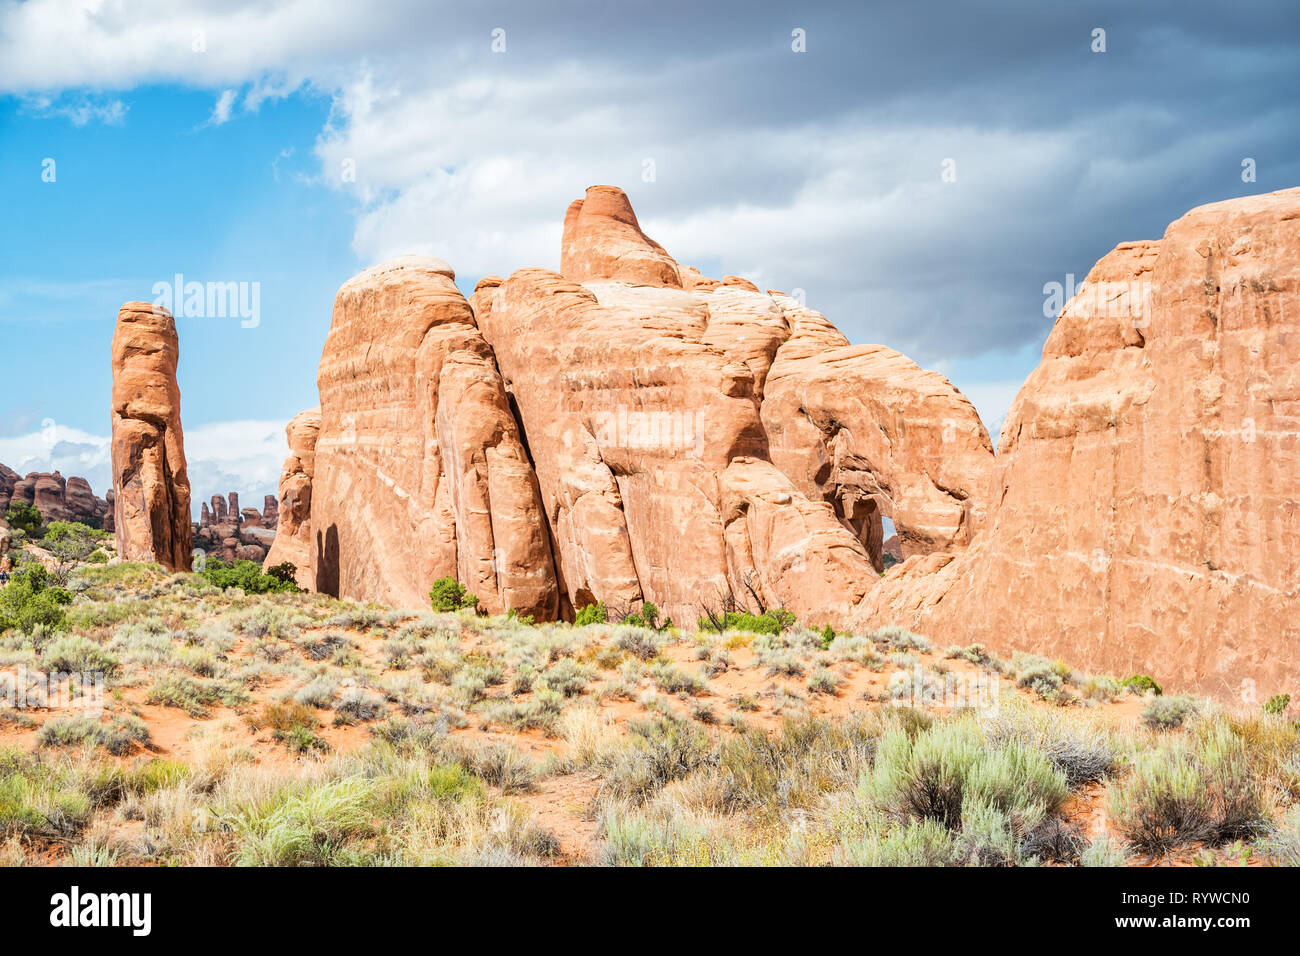 Stock photograph of rock formations in Arches National Park, Utah, USA on a sunny day. - Stock Image